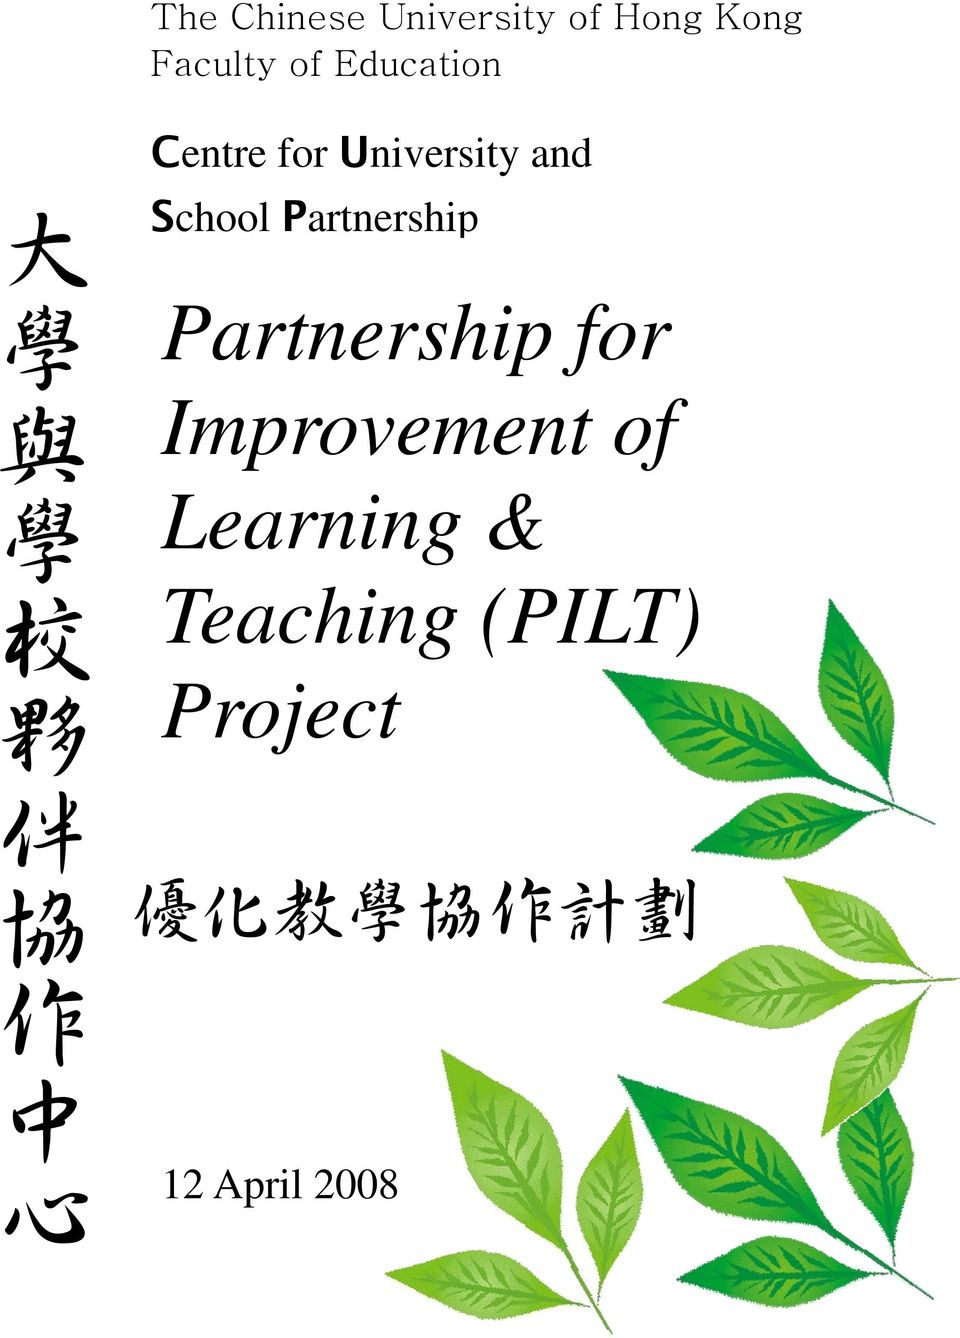 School Partnership Partnership for Improvement of